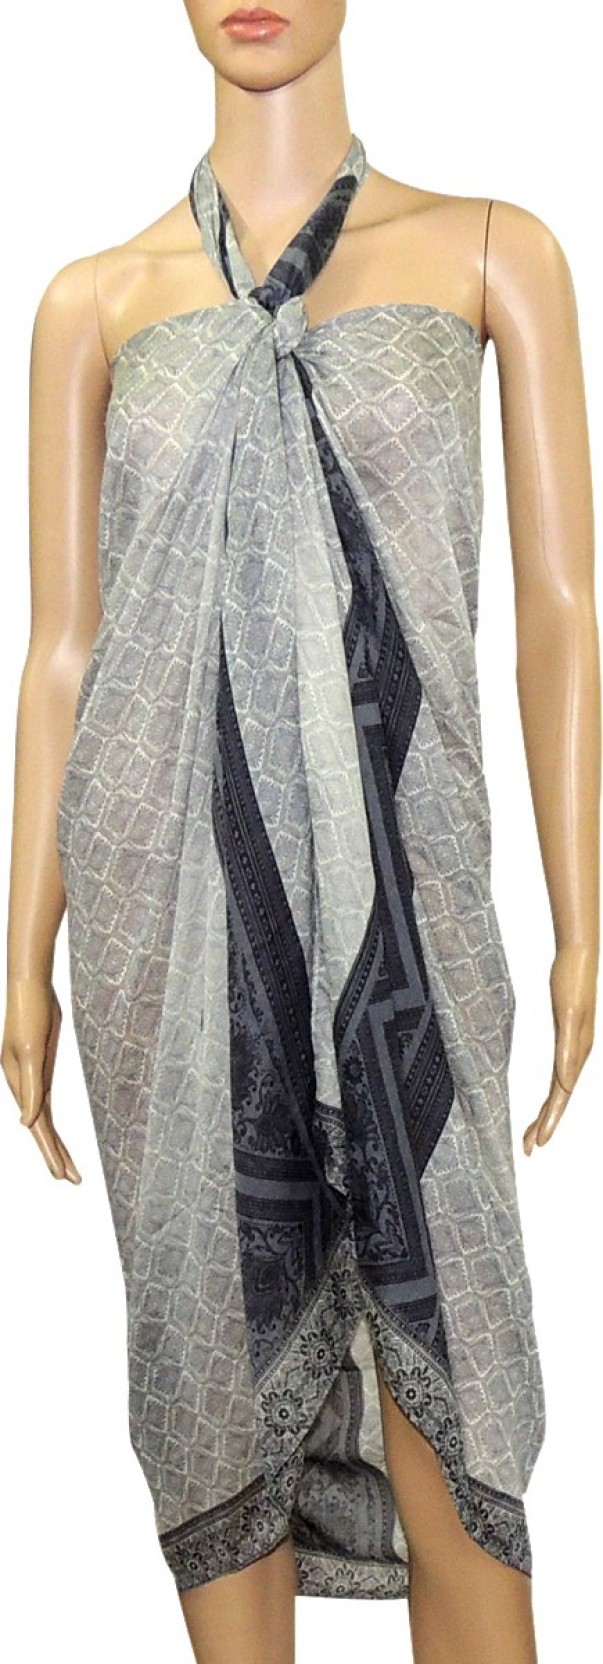 c6f498ffbf Indian Fashion Guru Printed Women's Sarong - Buy Multicolor Indian ...